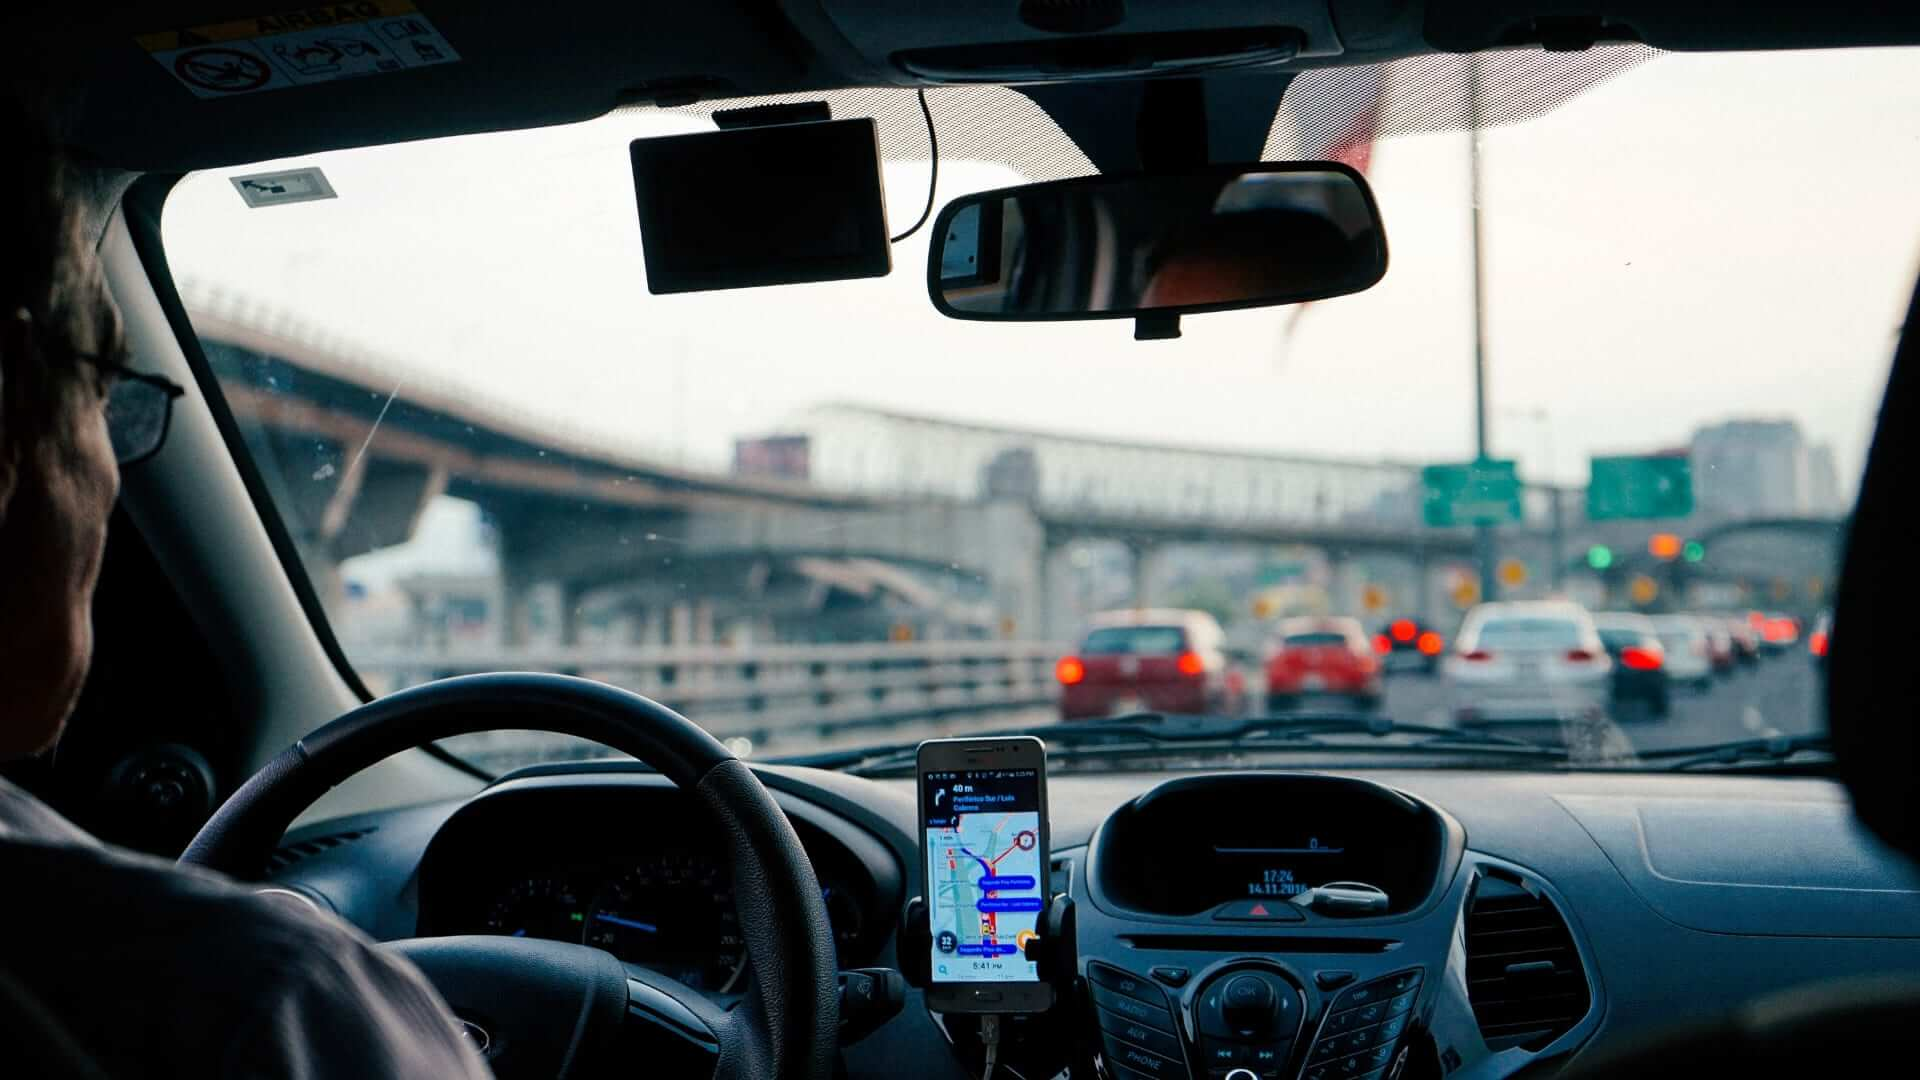 A man is driving a car with a phone with navigation on it in the car.